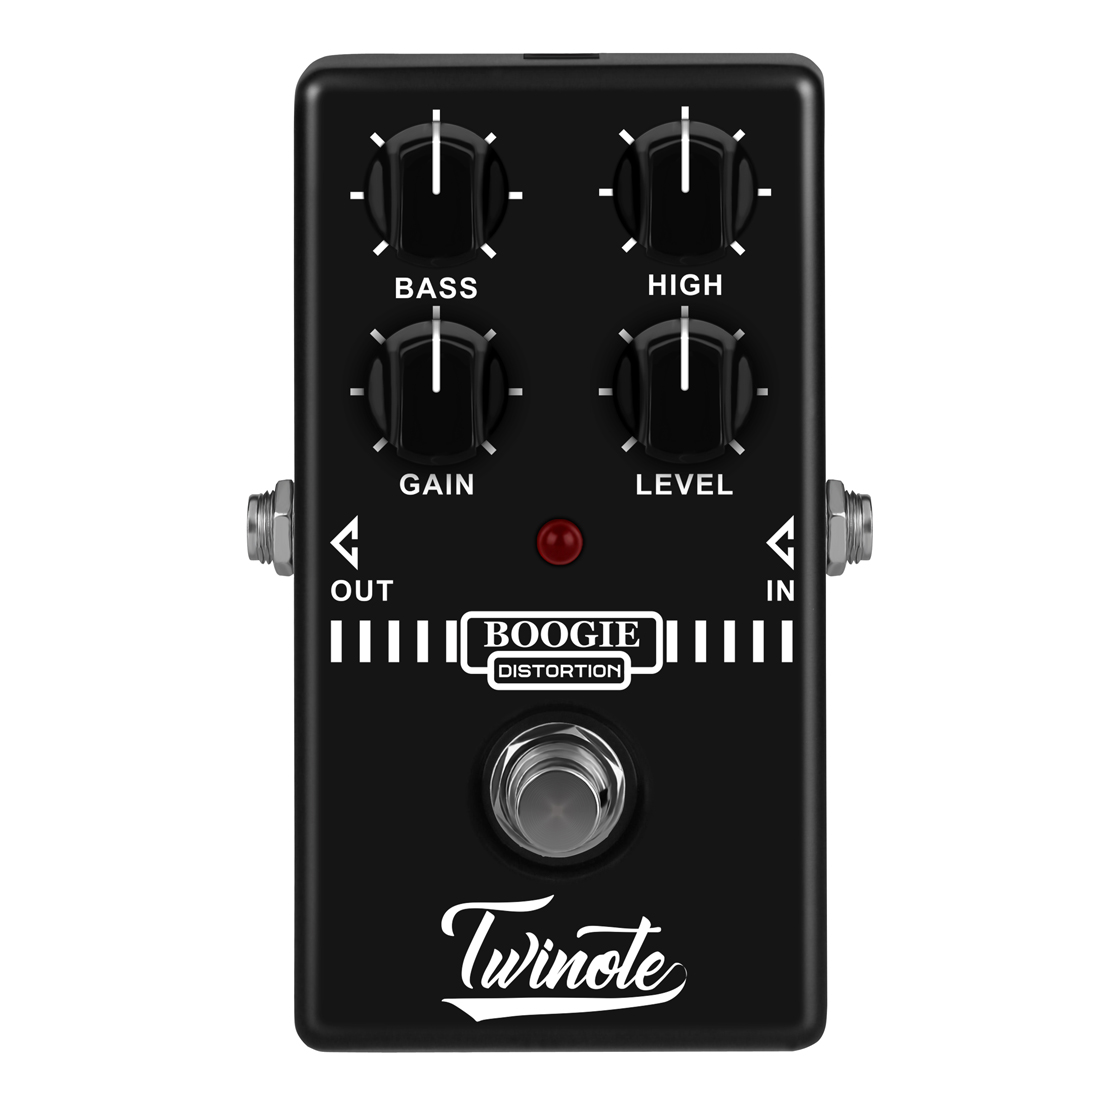 Twinote Old School Distortion Effects Pedal Effect Processor for Electric Guitar - Boogie Dist Type twinote boogie dist mini guitar pedal old school distortion tone synthesizer for mesa boogie guitar effect pedal